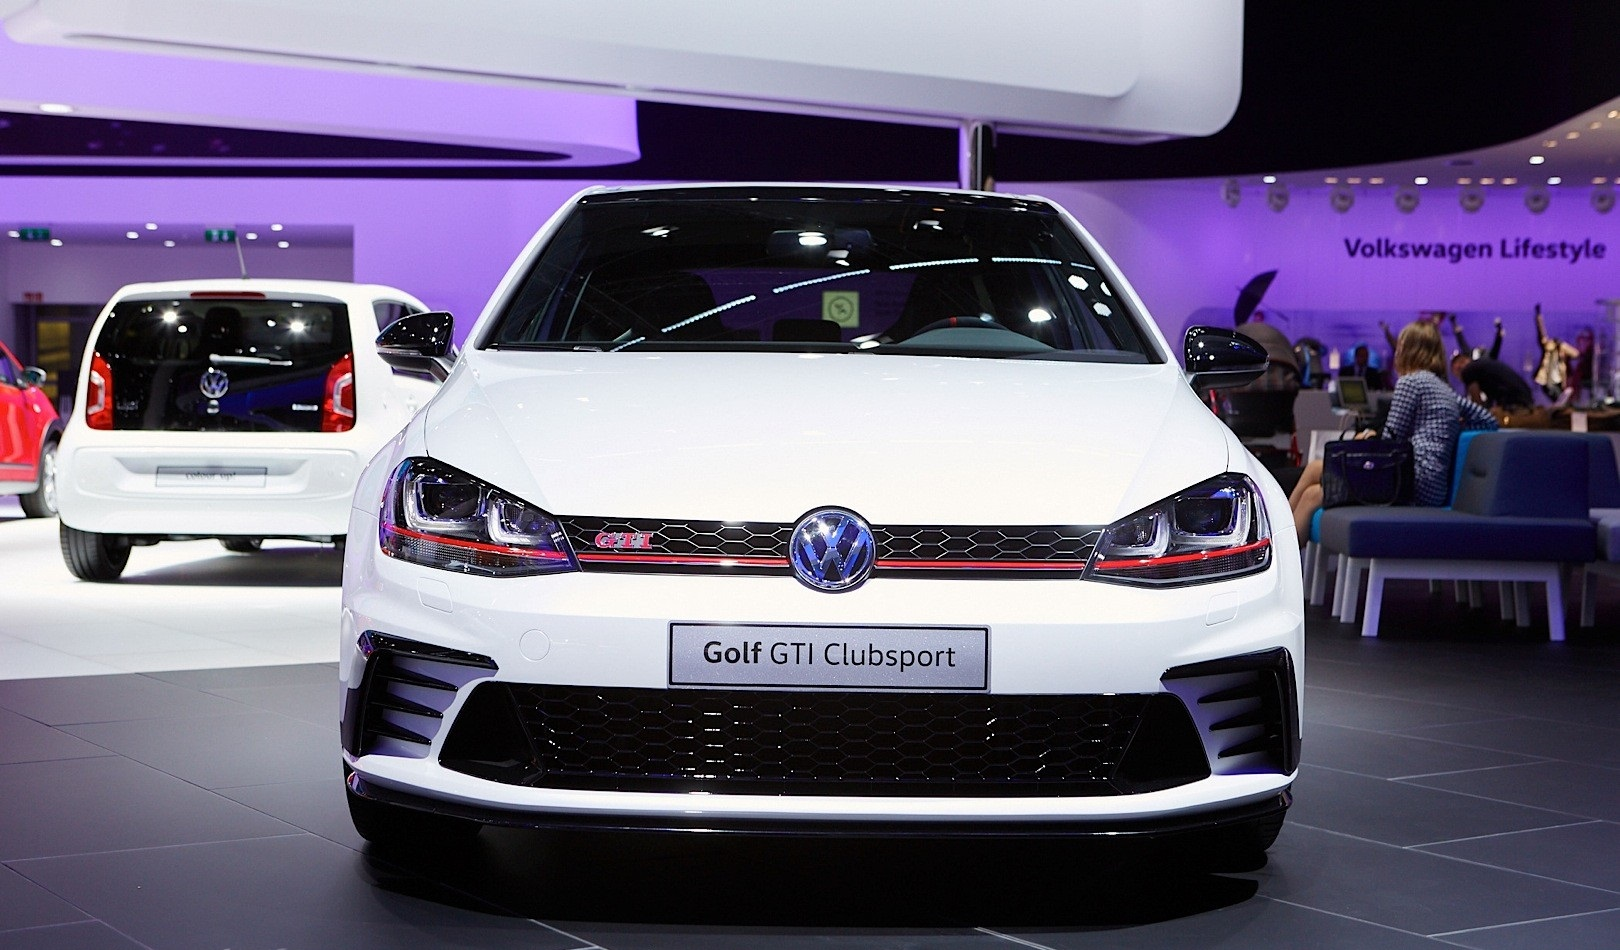 2016 Volkswagen Golf Gti Clubsport Front End Photo (Photo 7 of 10)